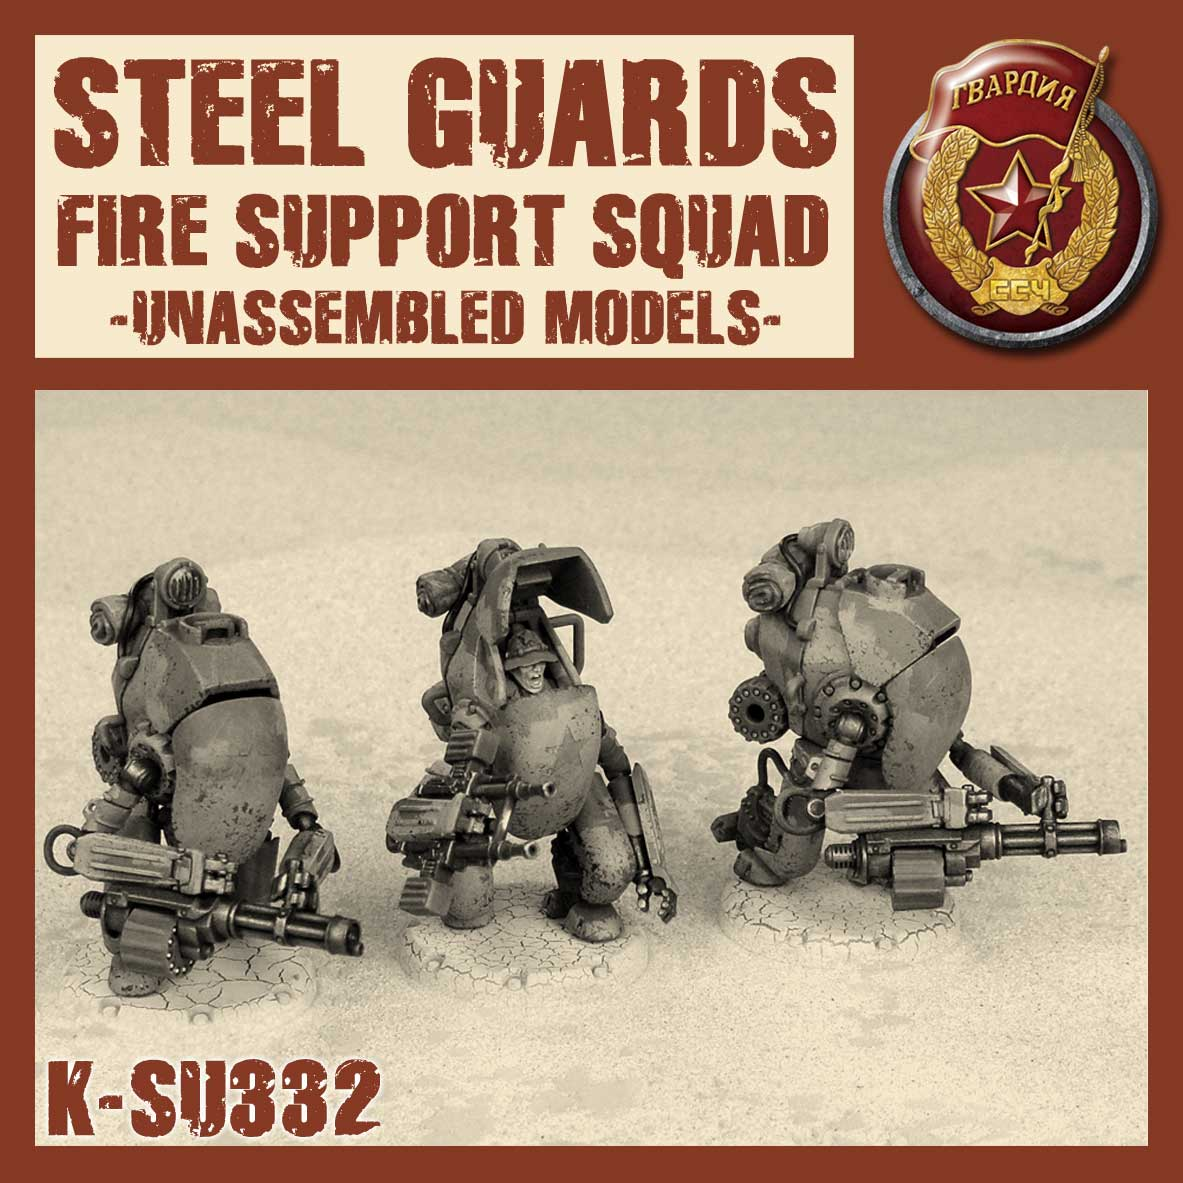 SG Fire Support Squad Kit